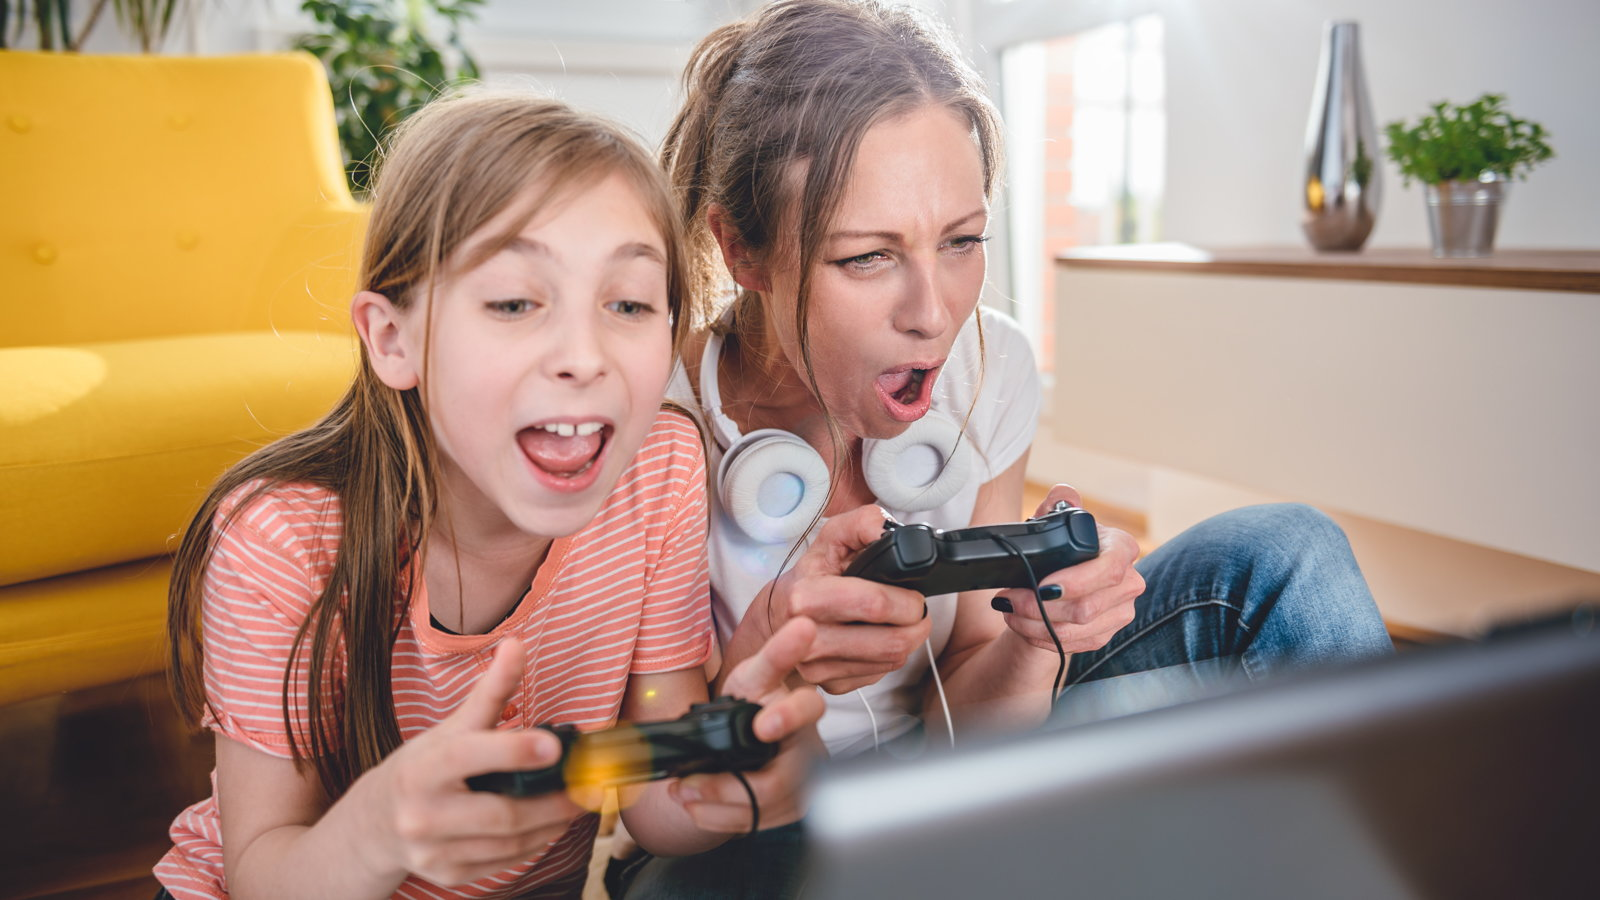 mom playing video game with daughter